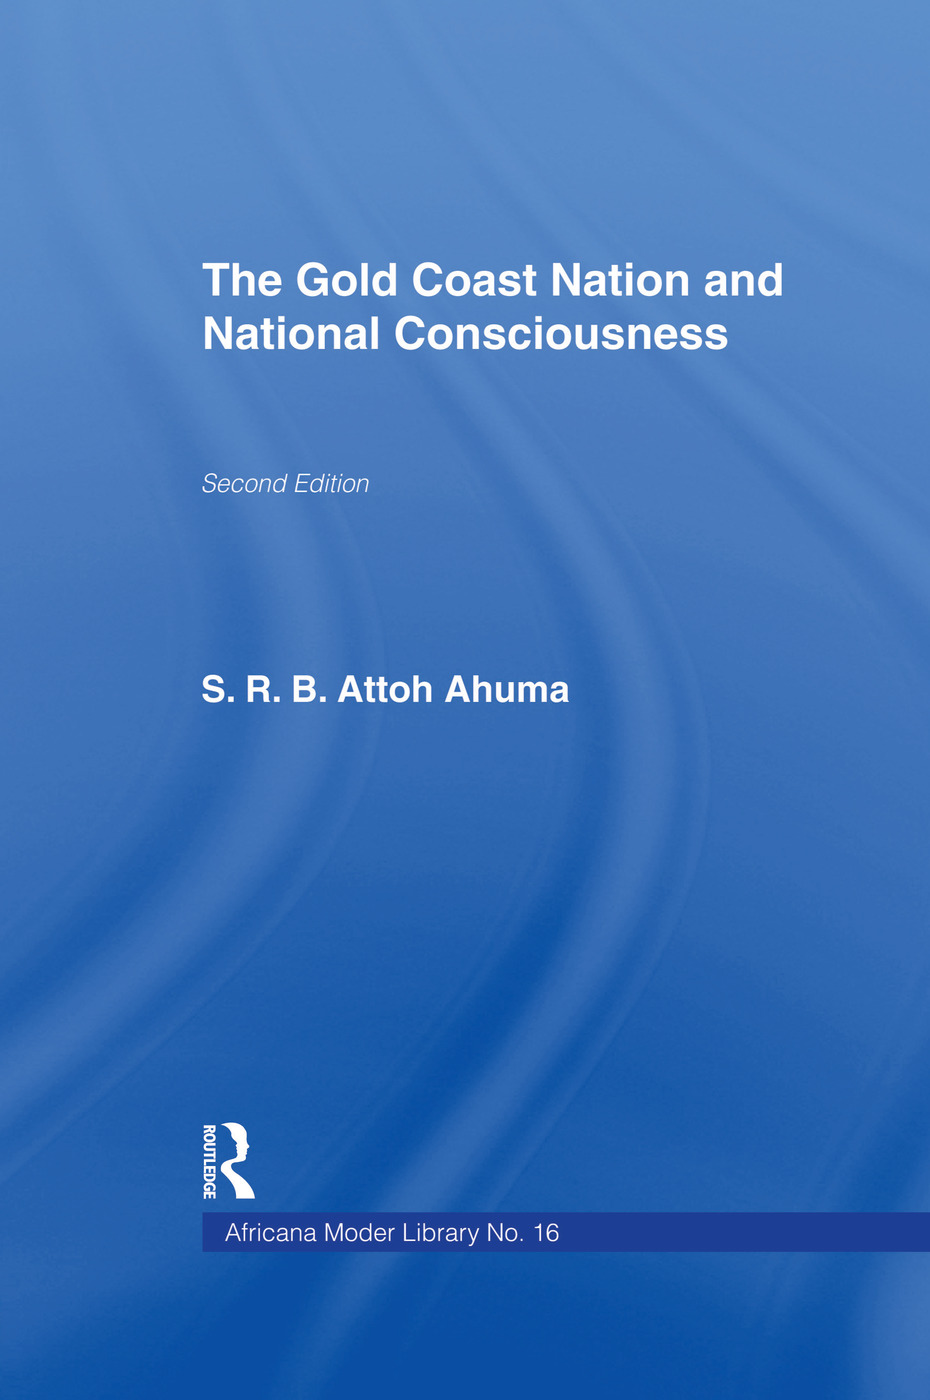 The Gold Coast Nation and National Consciousness